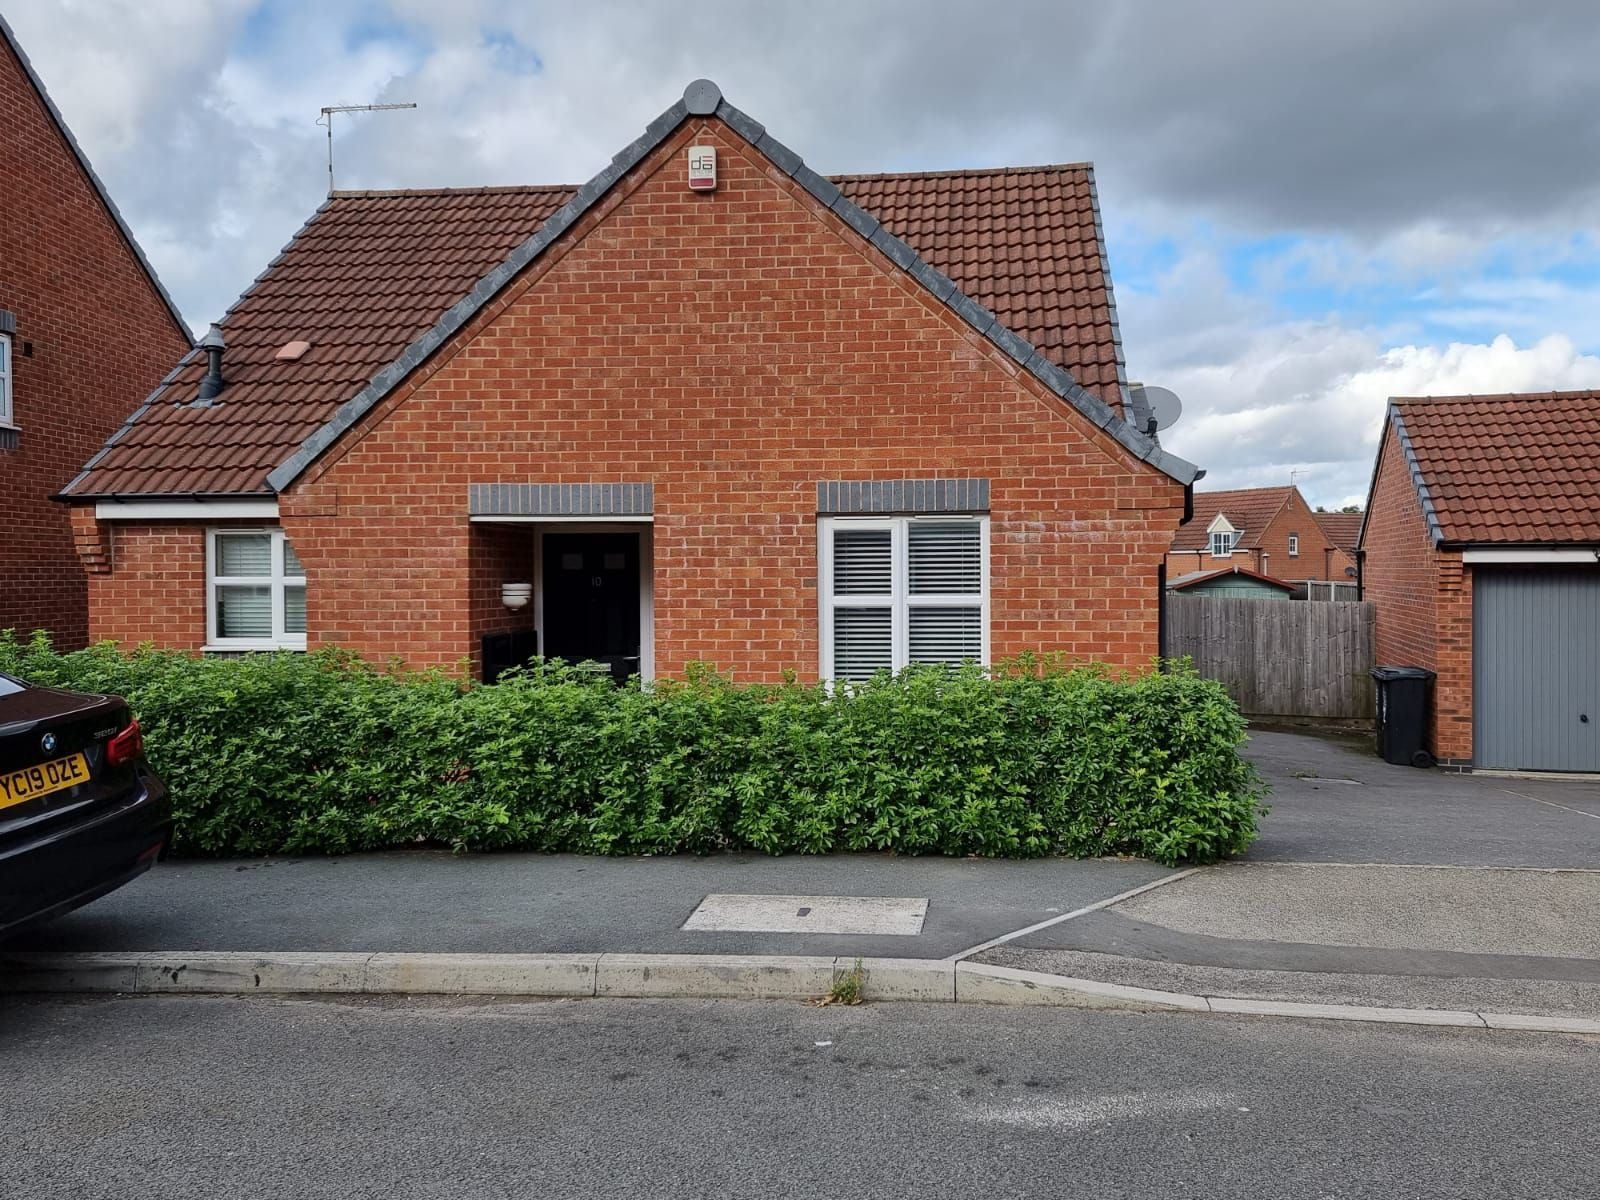 2 bedroom detached bungalow To Let in Leicester - Photograph 1.